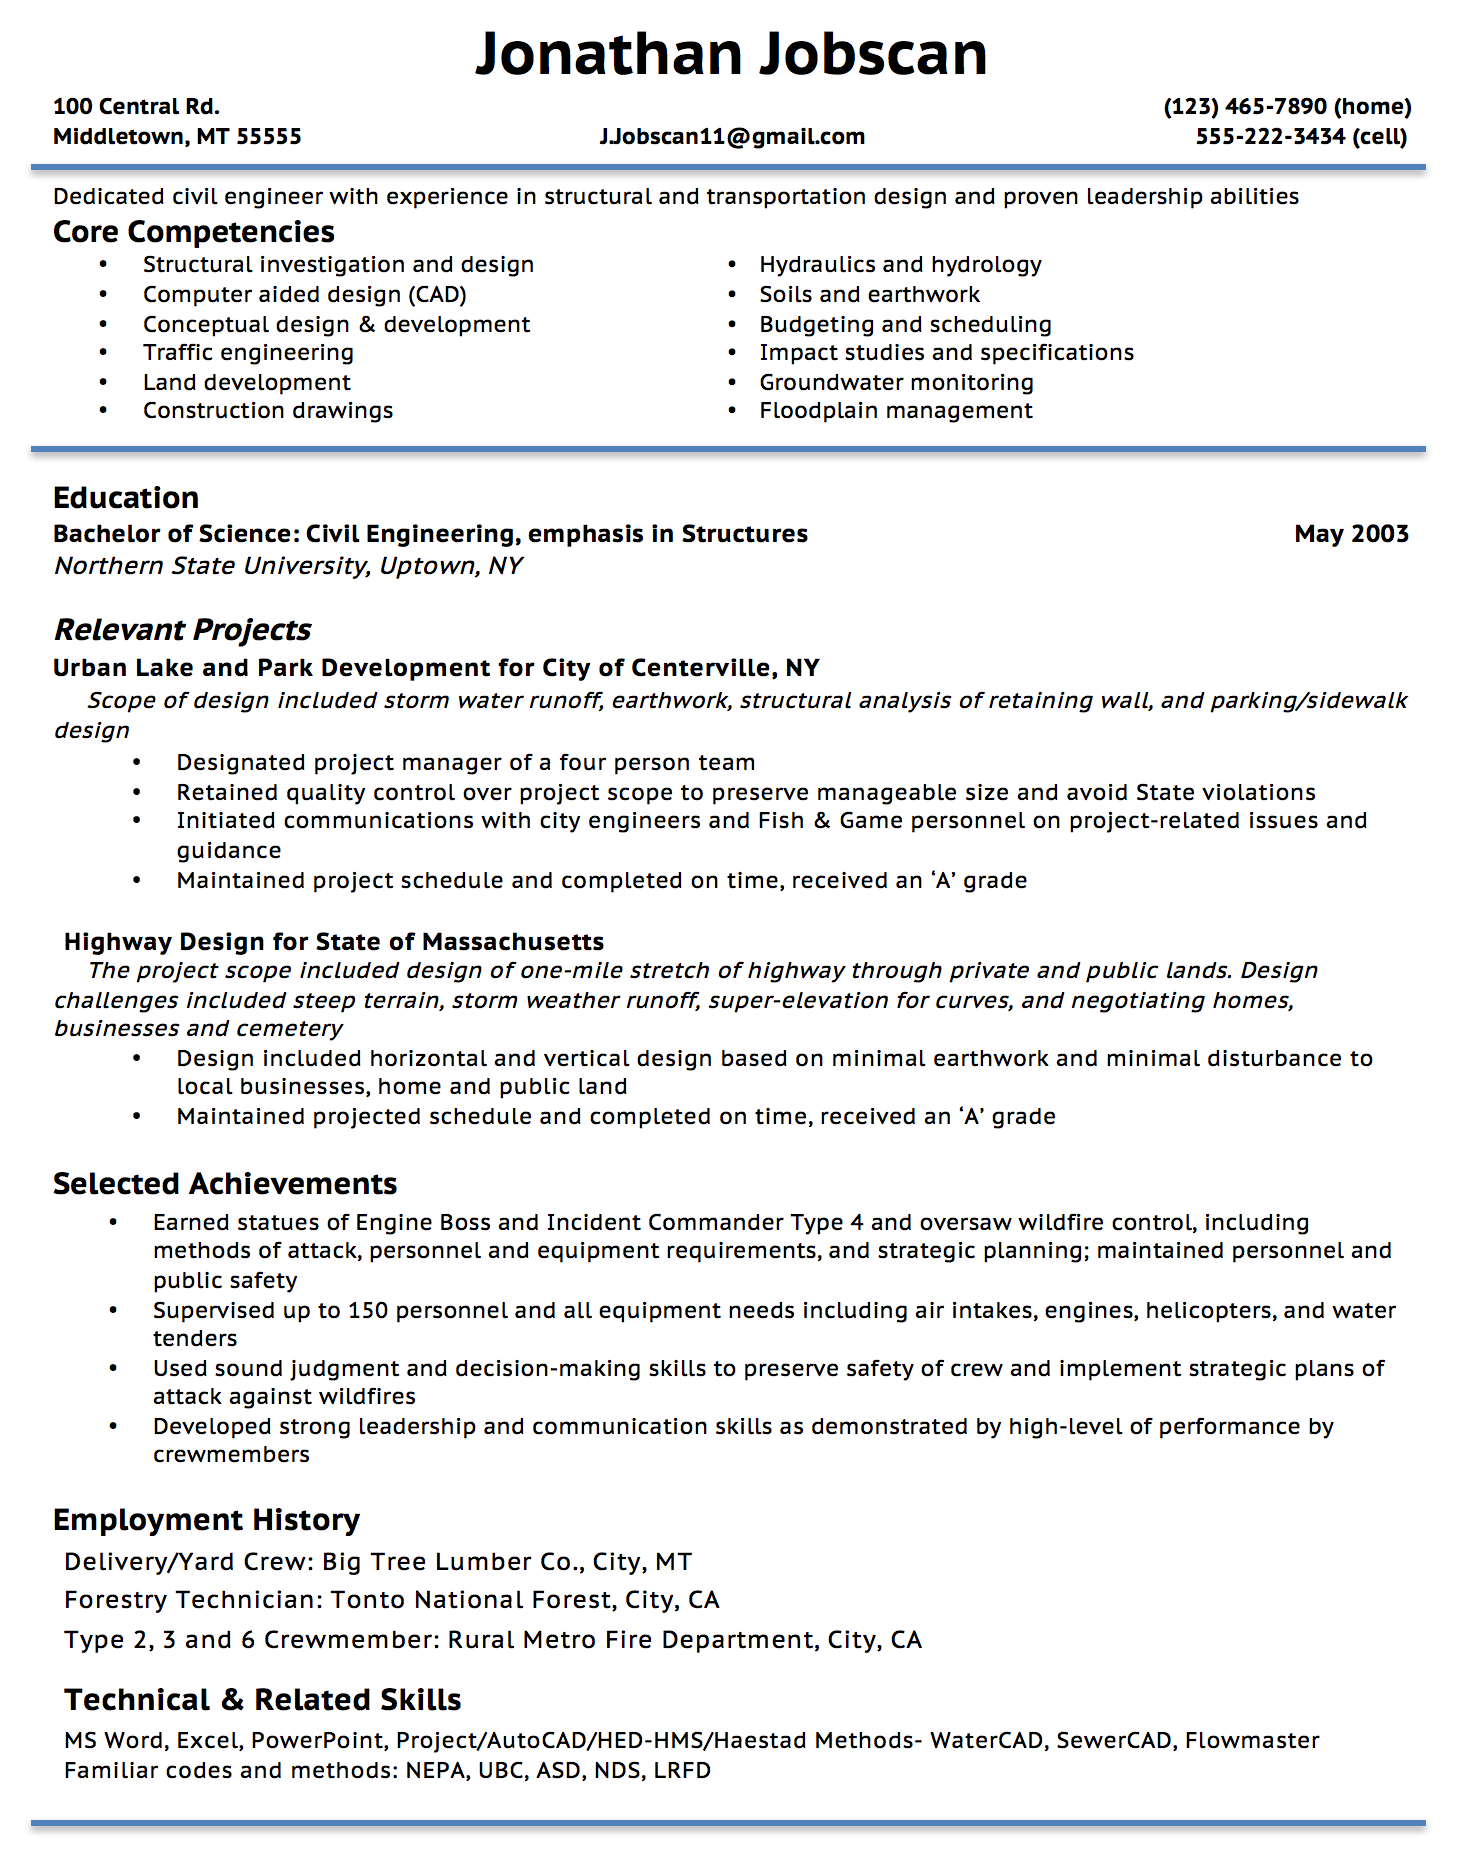 Picnictoimpeachus  Winning Resume Writing Guide  Jobscan With Interesting Example Of A Functional Resume Format With Adorable The Resume Place Also Resume No Work Experience In Addition High School Student Resume Examples And Starbucks Resume As Well As Military Resume Examples Additionally Example Of A Cover Letter For Resume From Jobscanco With Picnictoimpeachus  Interesting Resume Writing Guide  Jobscan With Adorable Example Of A Functional Resume Format And Winning The Resume Place Also Resume No Work Experience In Addition High School Student Resume Examples From Jobscanco